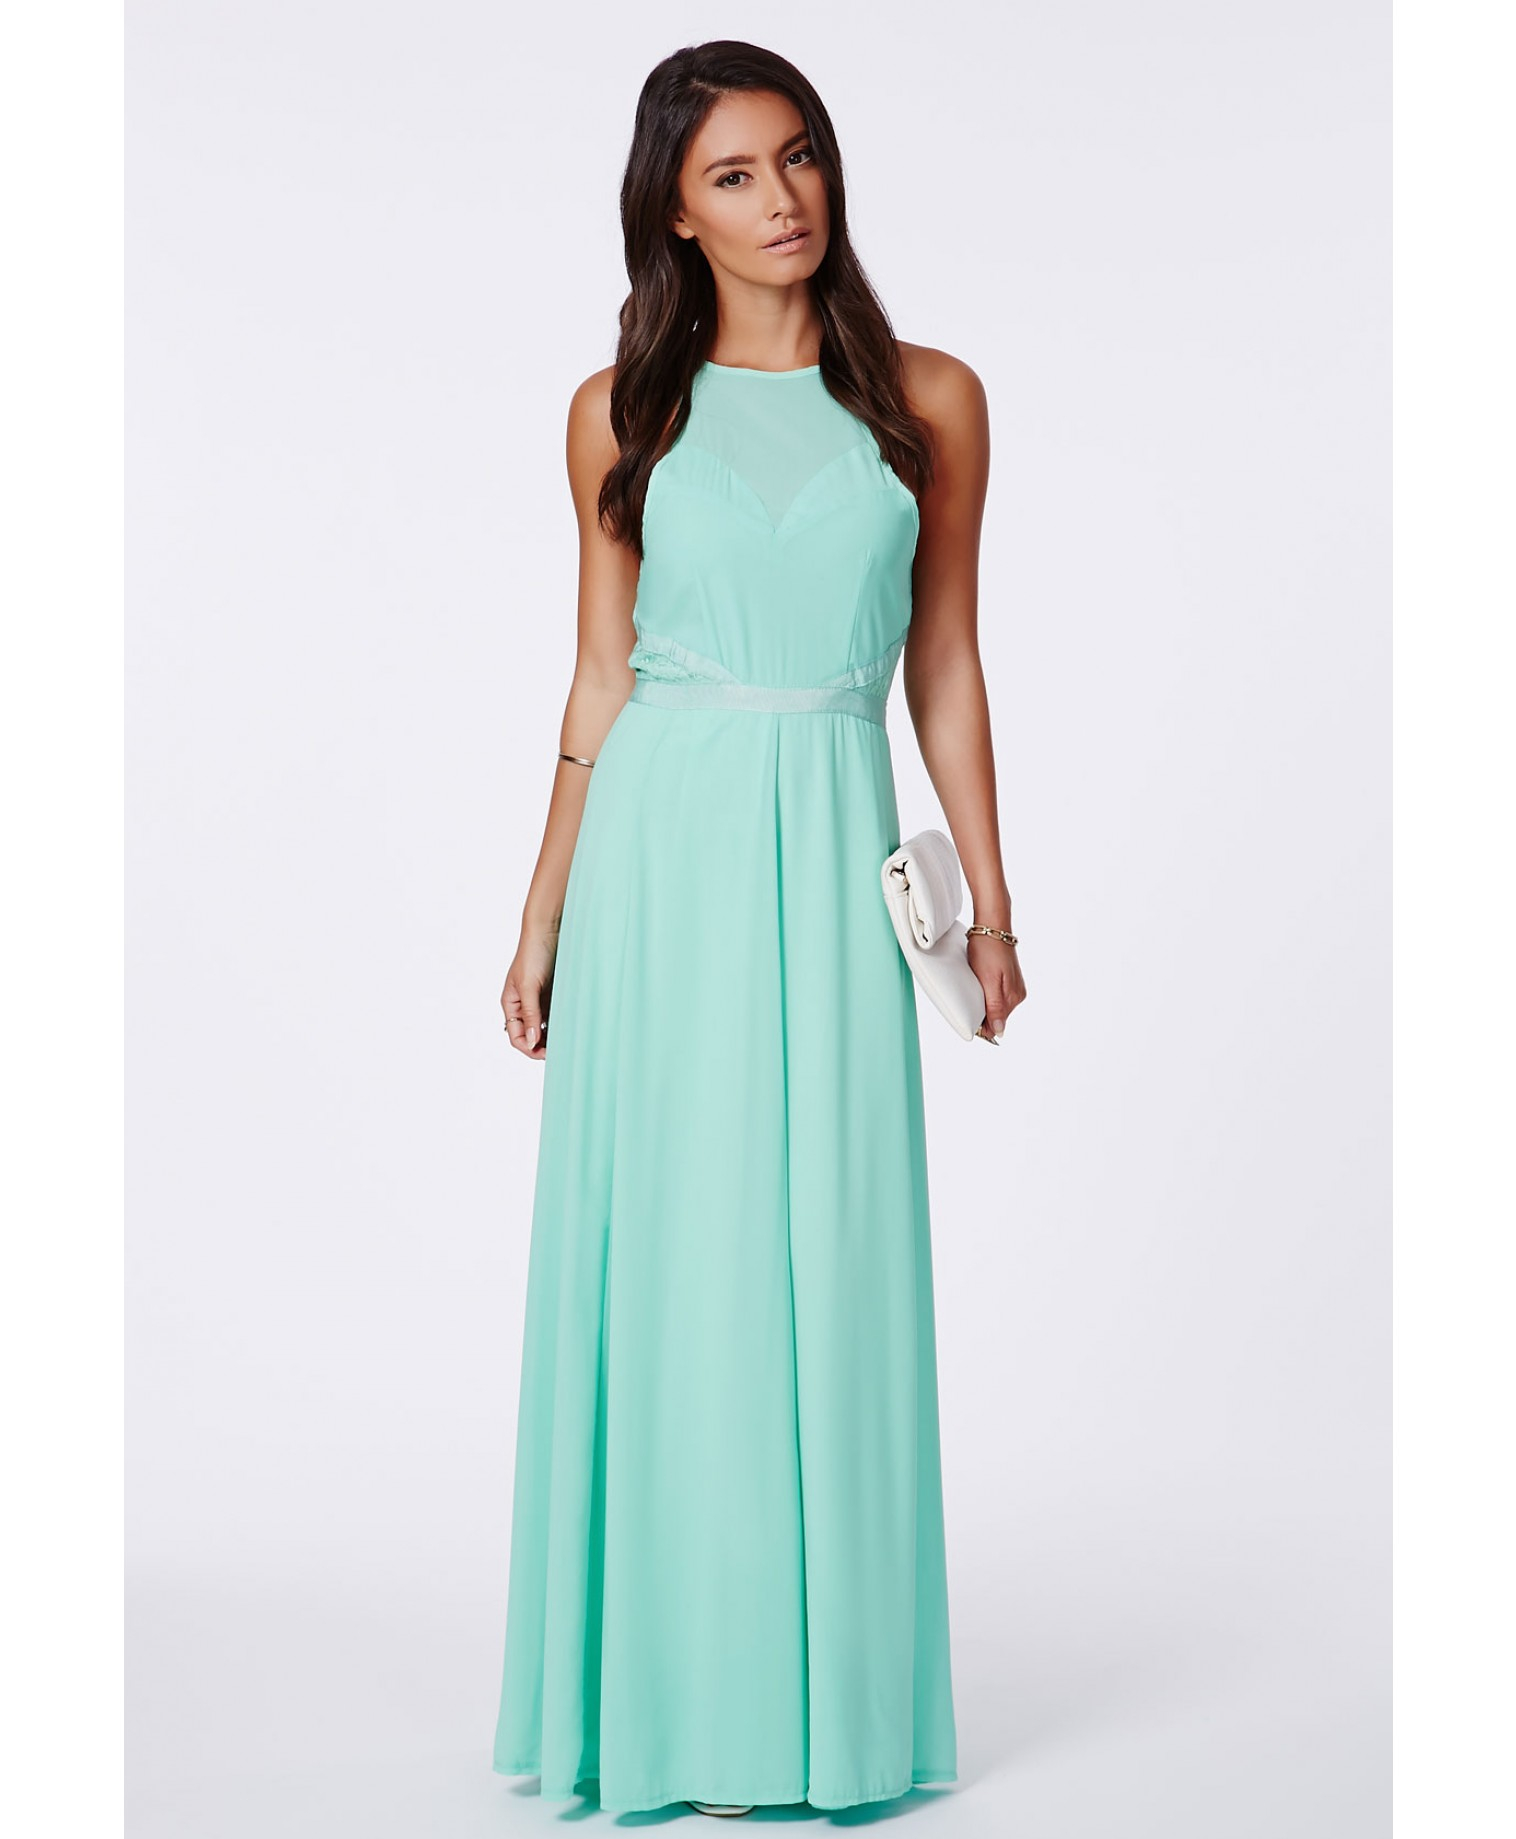 Moss / Mint Green maxi's for ladies; cap sleeve full-figure dress Clothink Women's Convertible Wrap Multi Way Party Long Maxi Dress. by Clothink. loose fitted Light Mint Green maxi dress; full floor length roswear Women's Summer Casual Round Neck Ruched Short Sleeve Floral Maxi Dress with Pockets. by roswear.